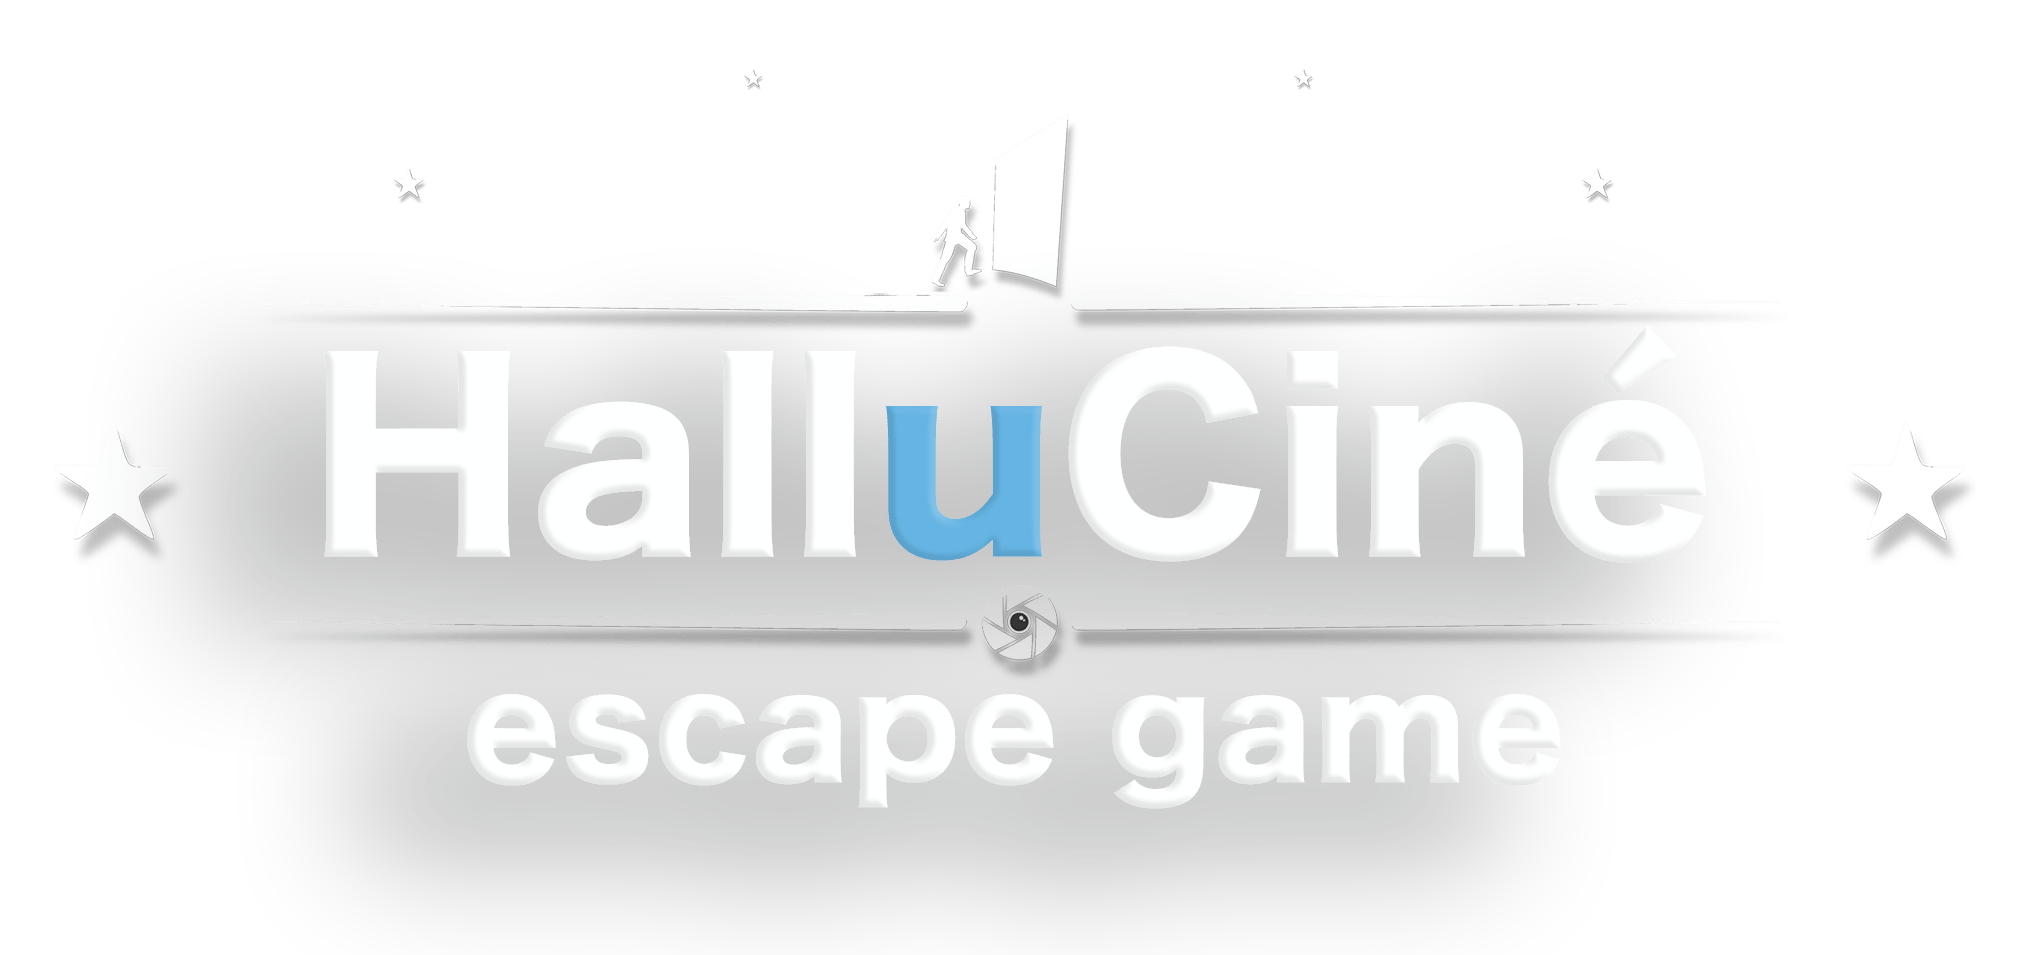 HalluCiné Escape Game - Mâcon